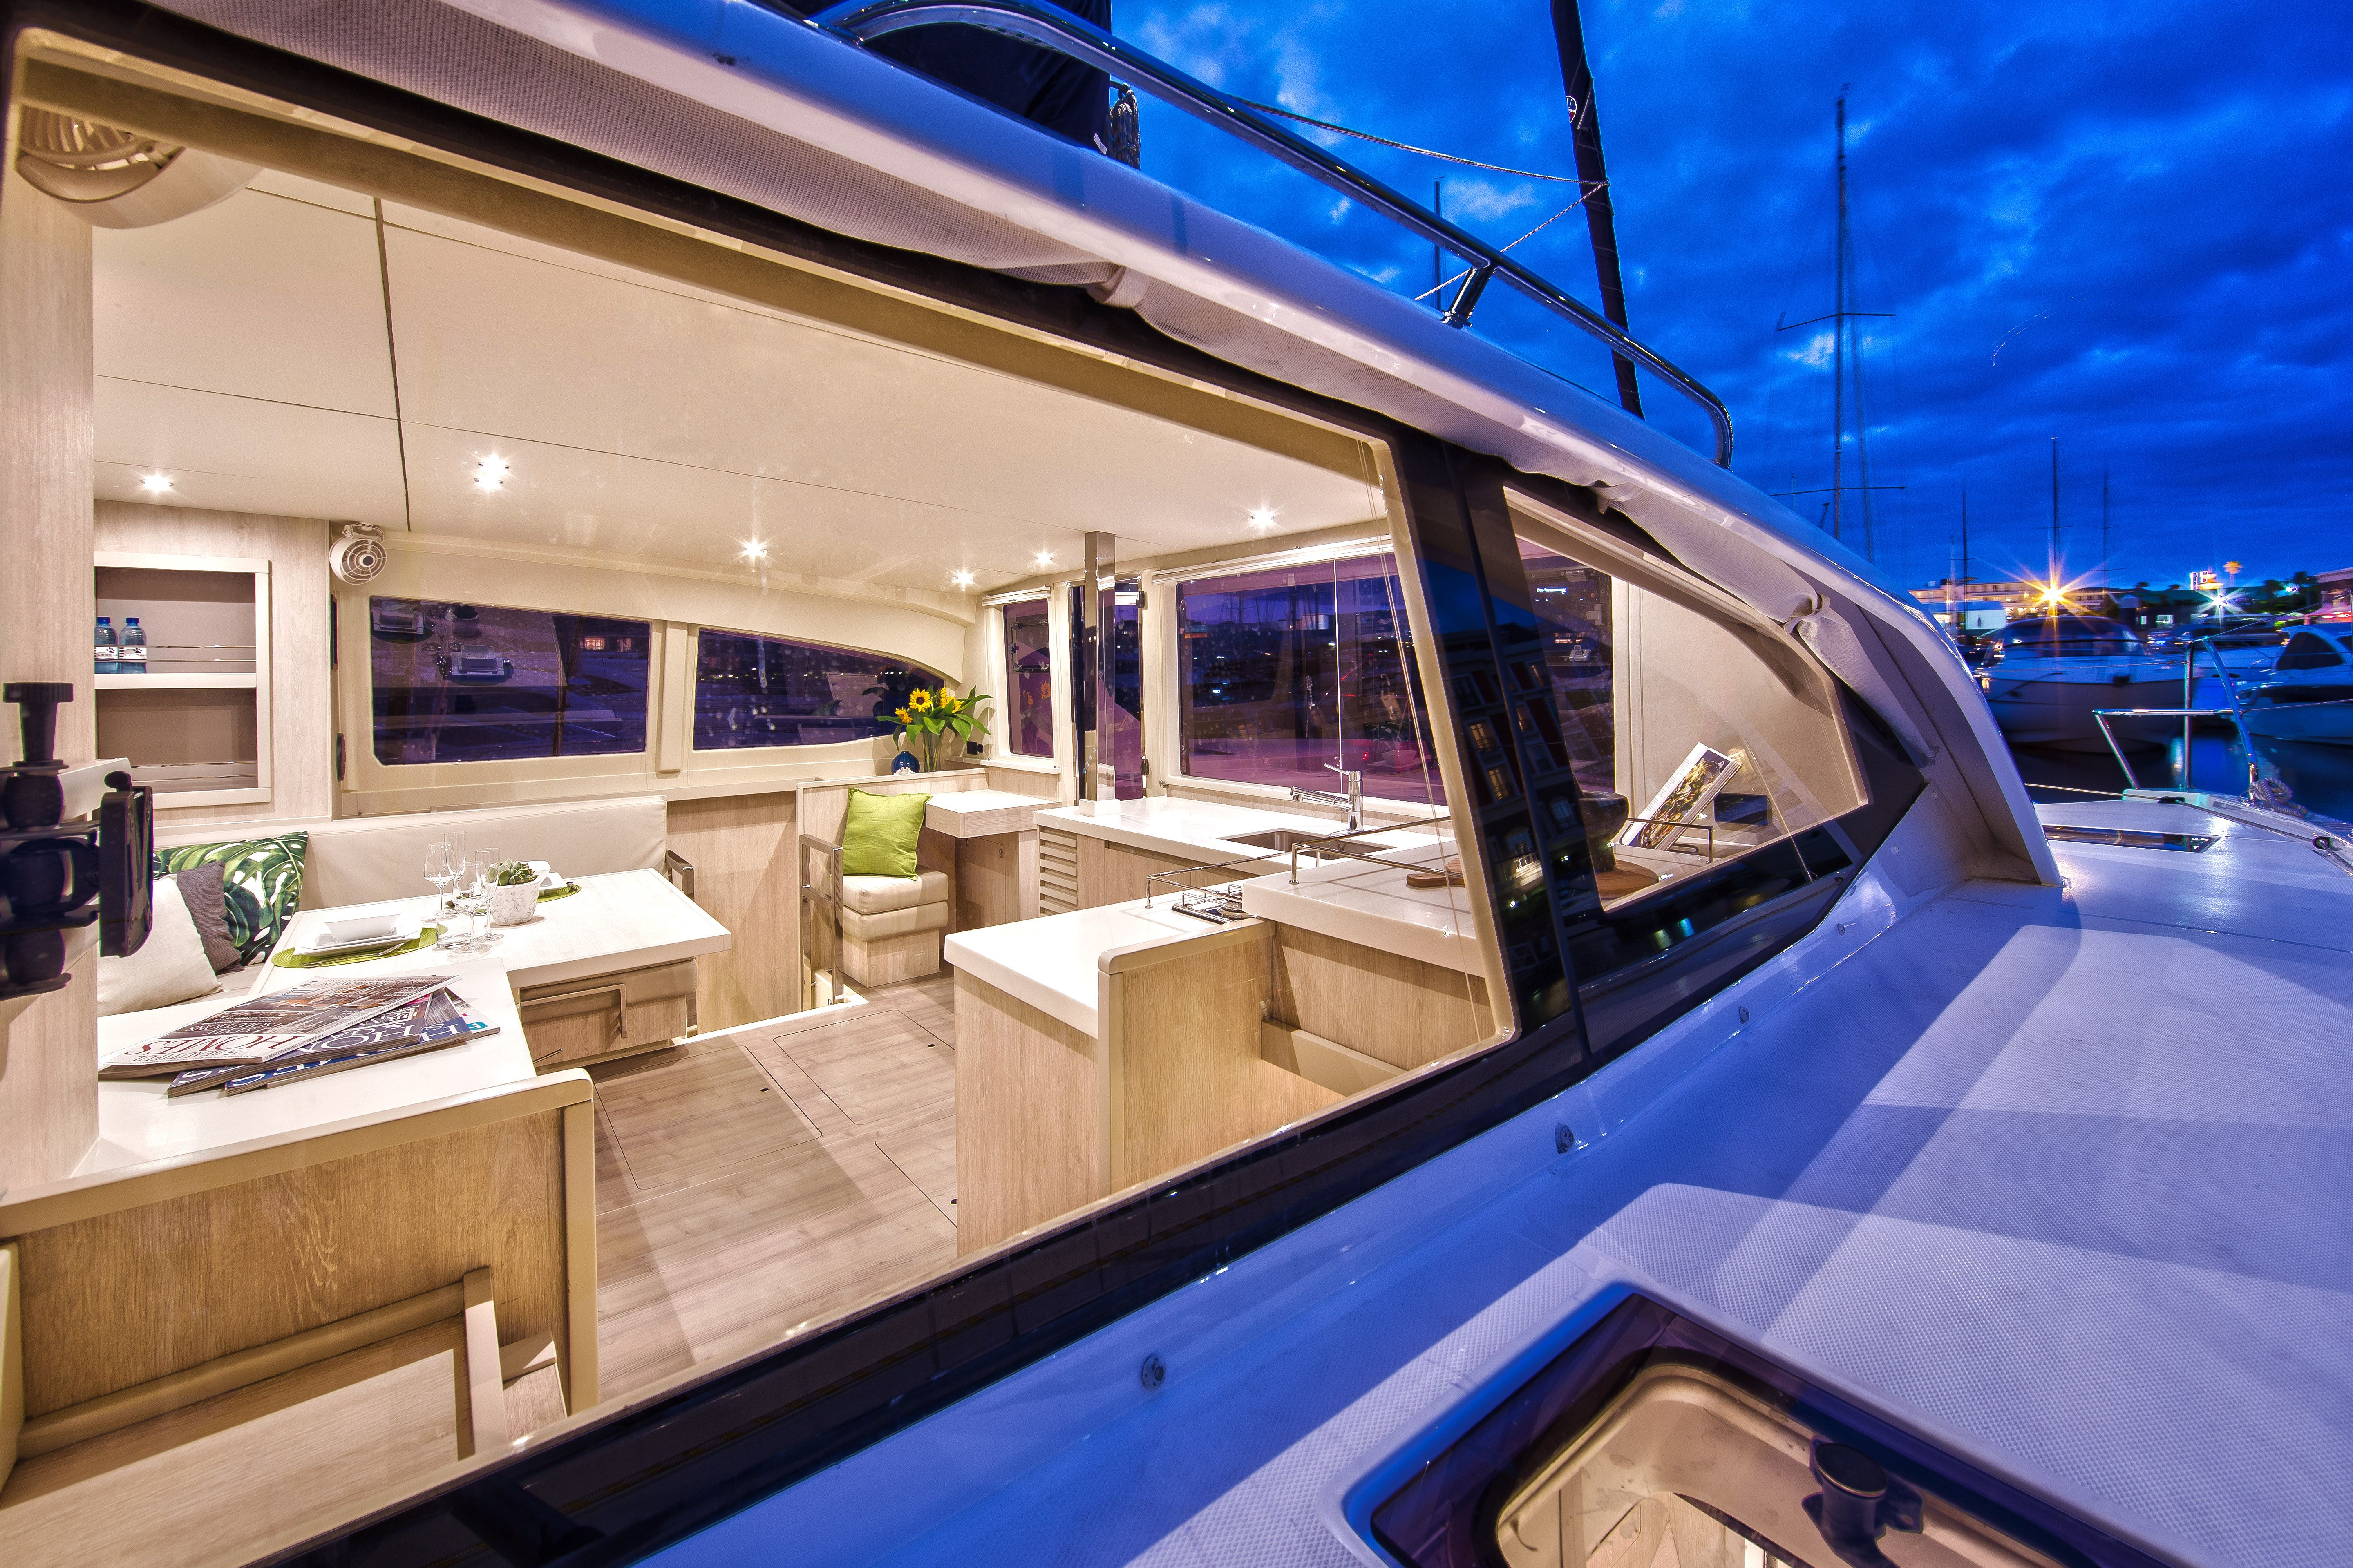 Sunsail 444 for sale - Looking Inside The Roomy Interior Of The Sunsail 404 Available To Charter Across The Caribbean